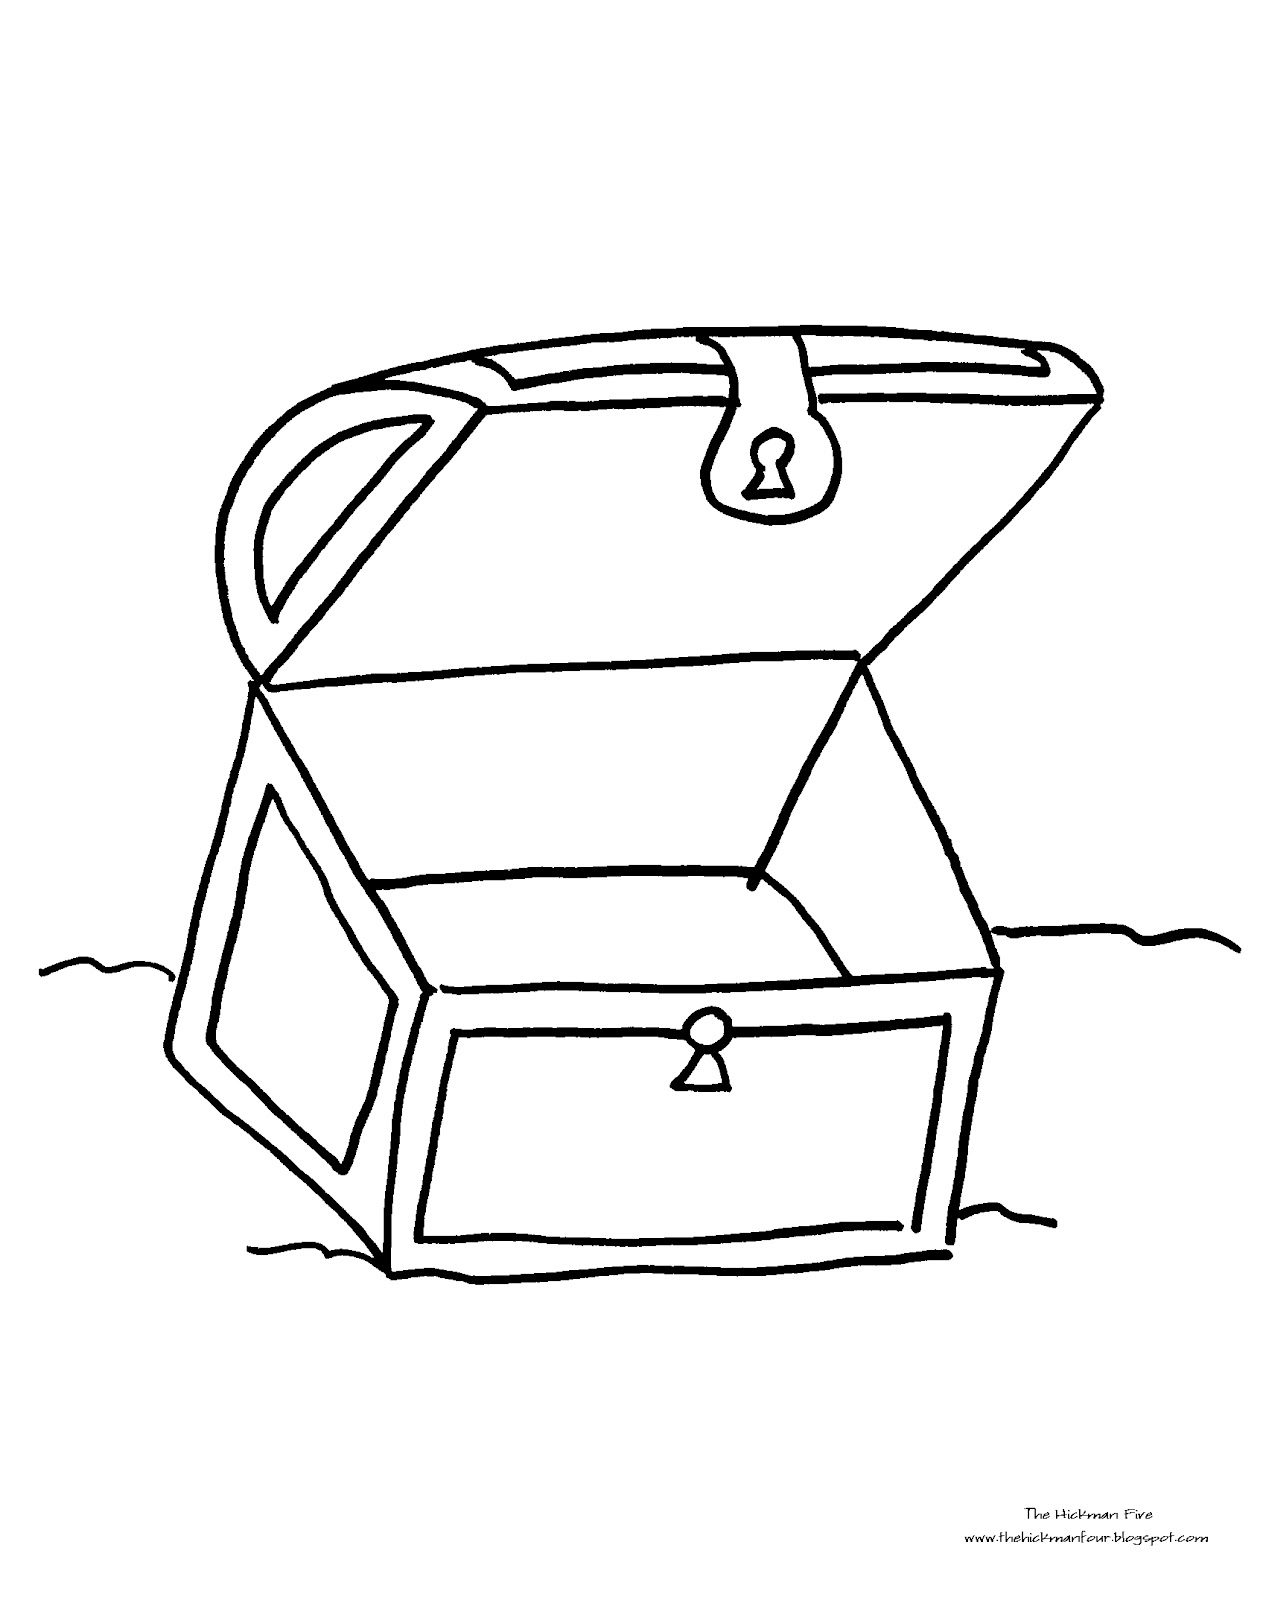 Empty open treasure chest clipart black and white svg royalty free stock Free Black And White Outline Of A Treasure Chest, Download Free Clip ... svg royalty free stock